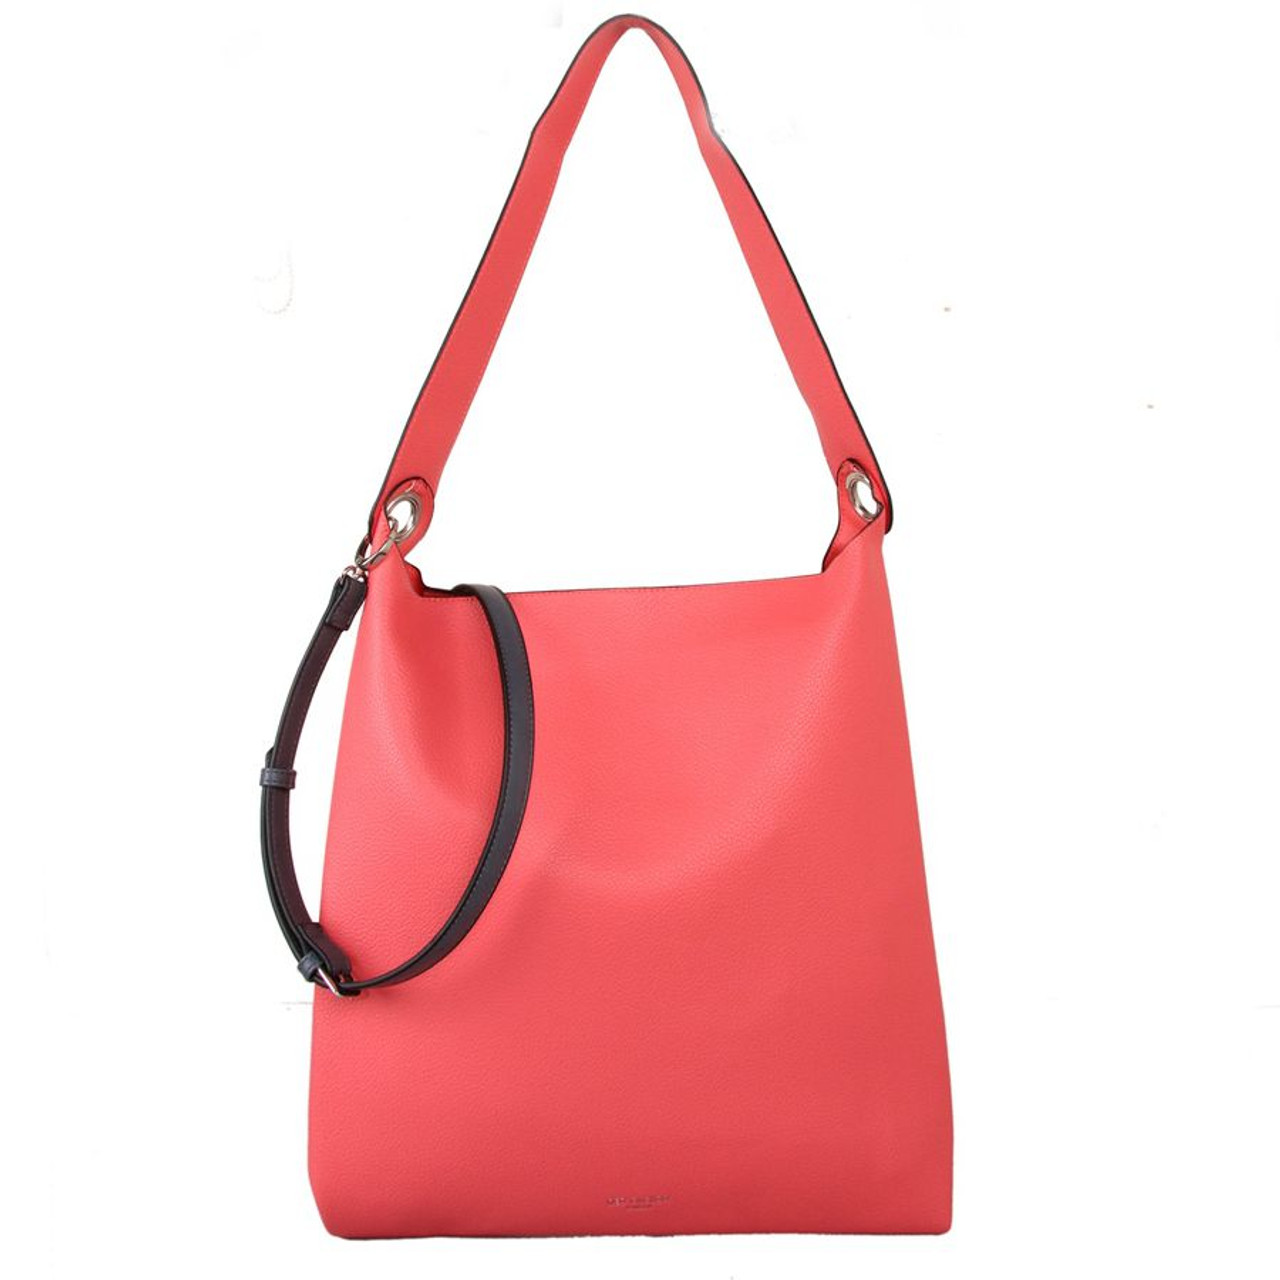 b0468bf4a6bed Red Cuckoo Coral Shoulder Bag - Itsy Bitsy Boutique